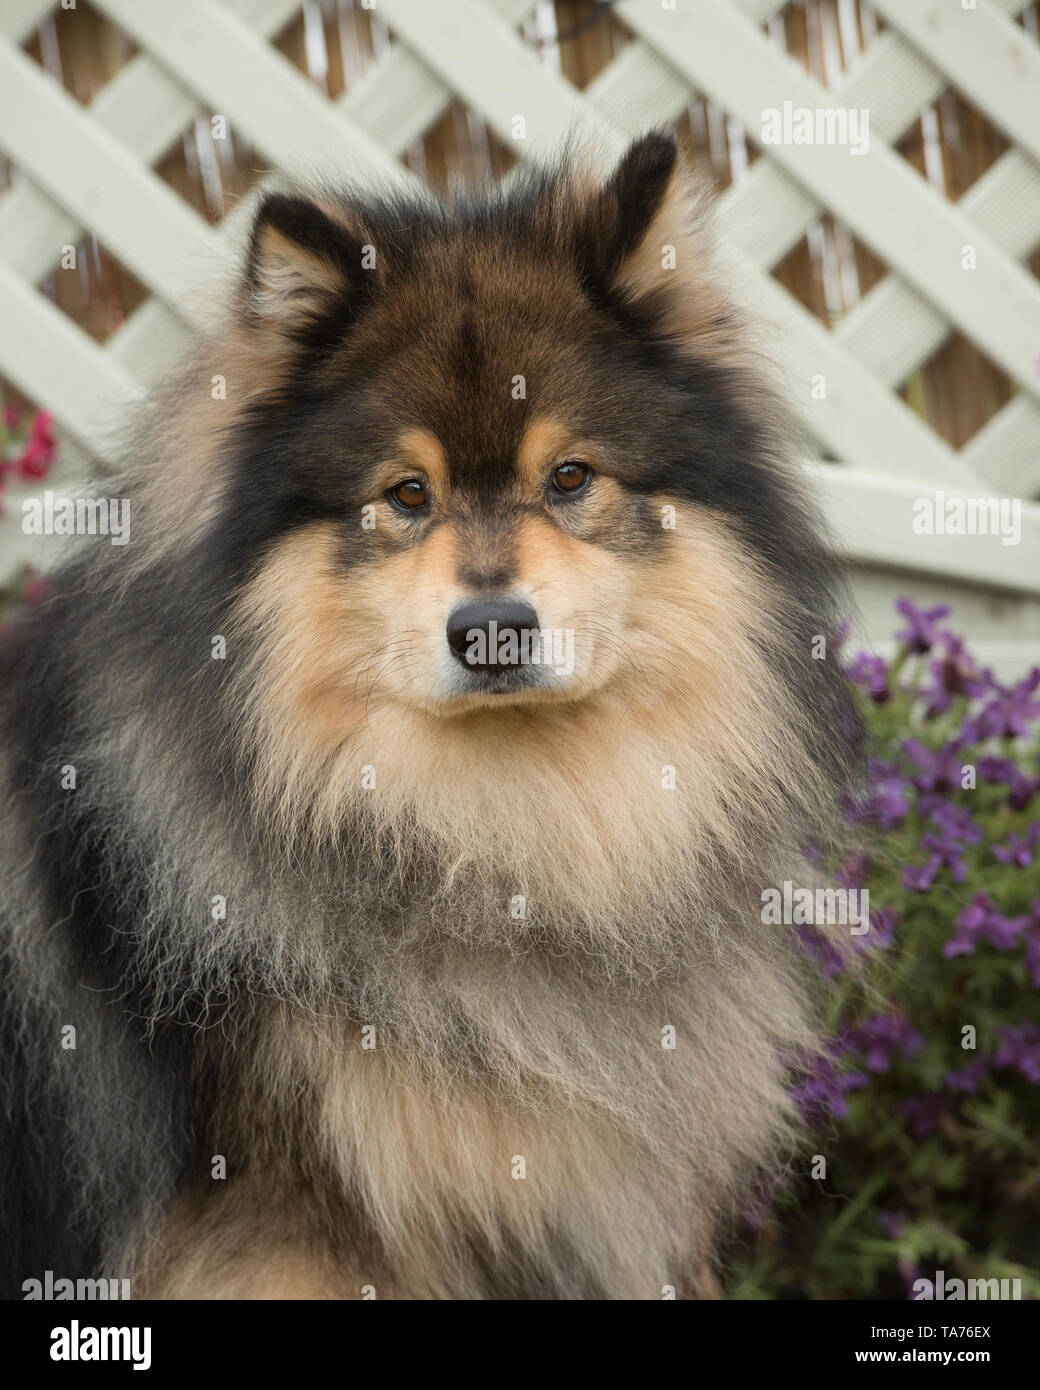 Hunting Spitz Stock Photos & Hunting Spitz Stock Images - Alamy